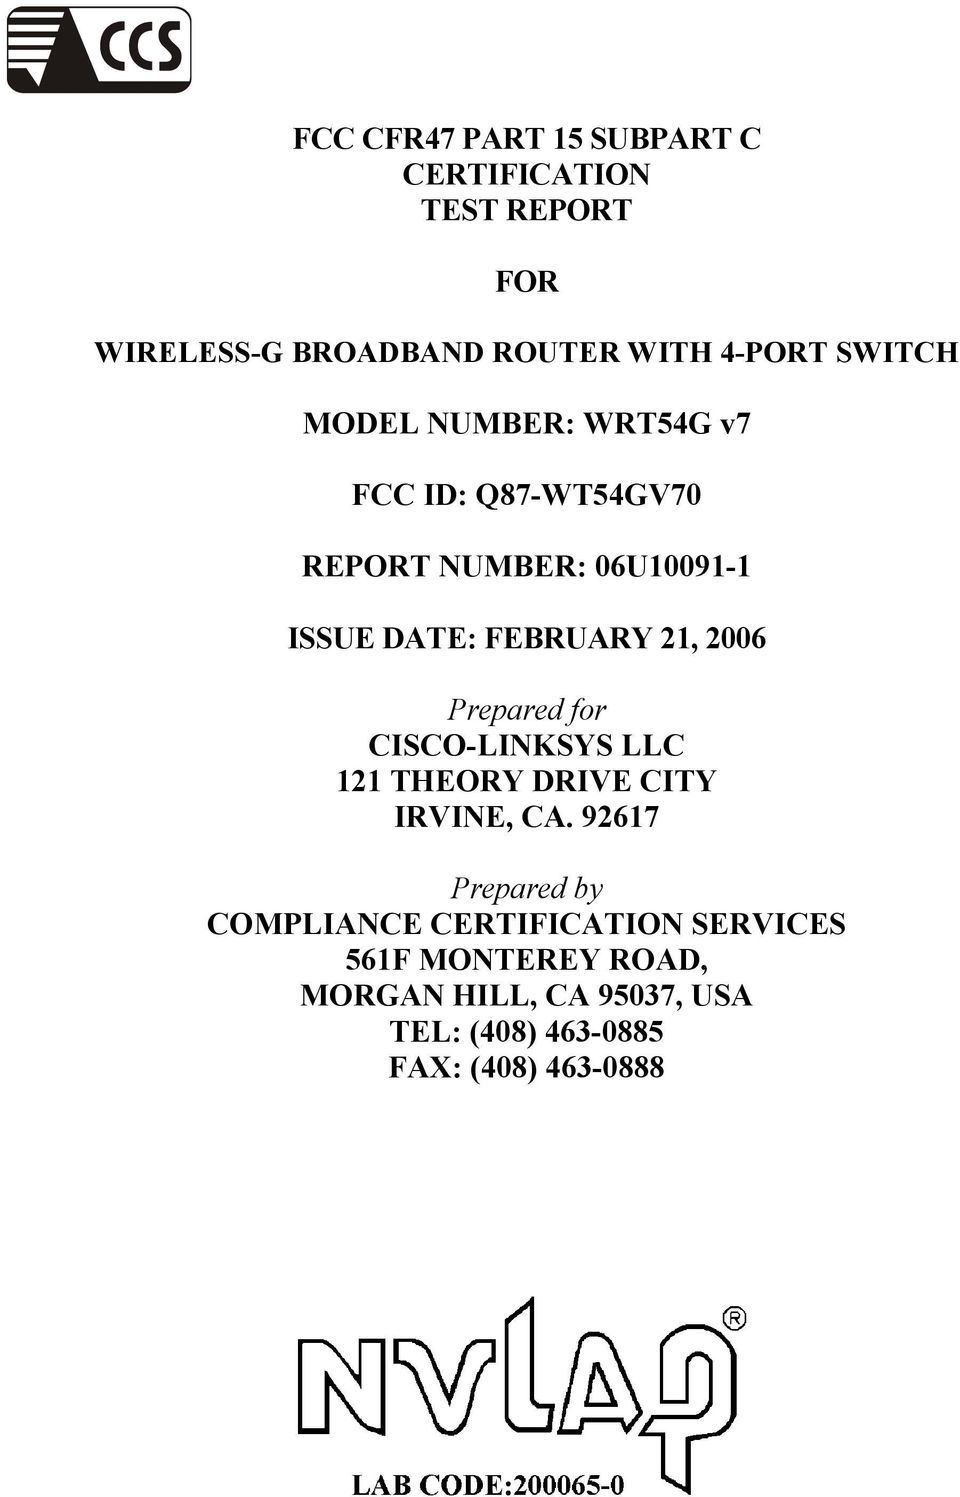 Fcc Cfr47 Part 15 Subpart C Certification Test Report For Model Details About Fm Transmitter Circuit Board Kit Certified Date February 21 2006 Prepared Cisco Linksys Llc 121 Theory Drive City